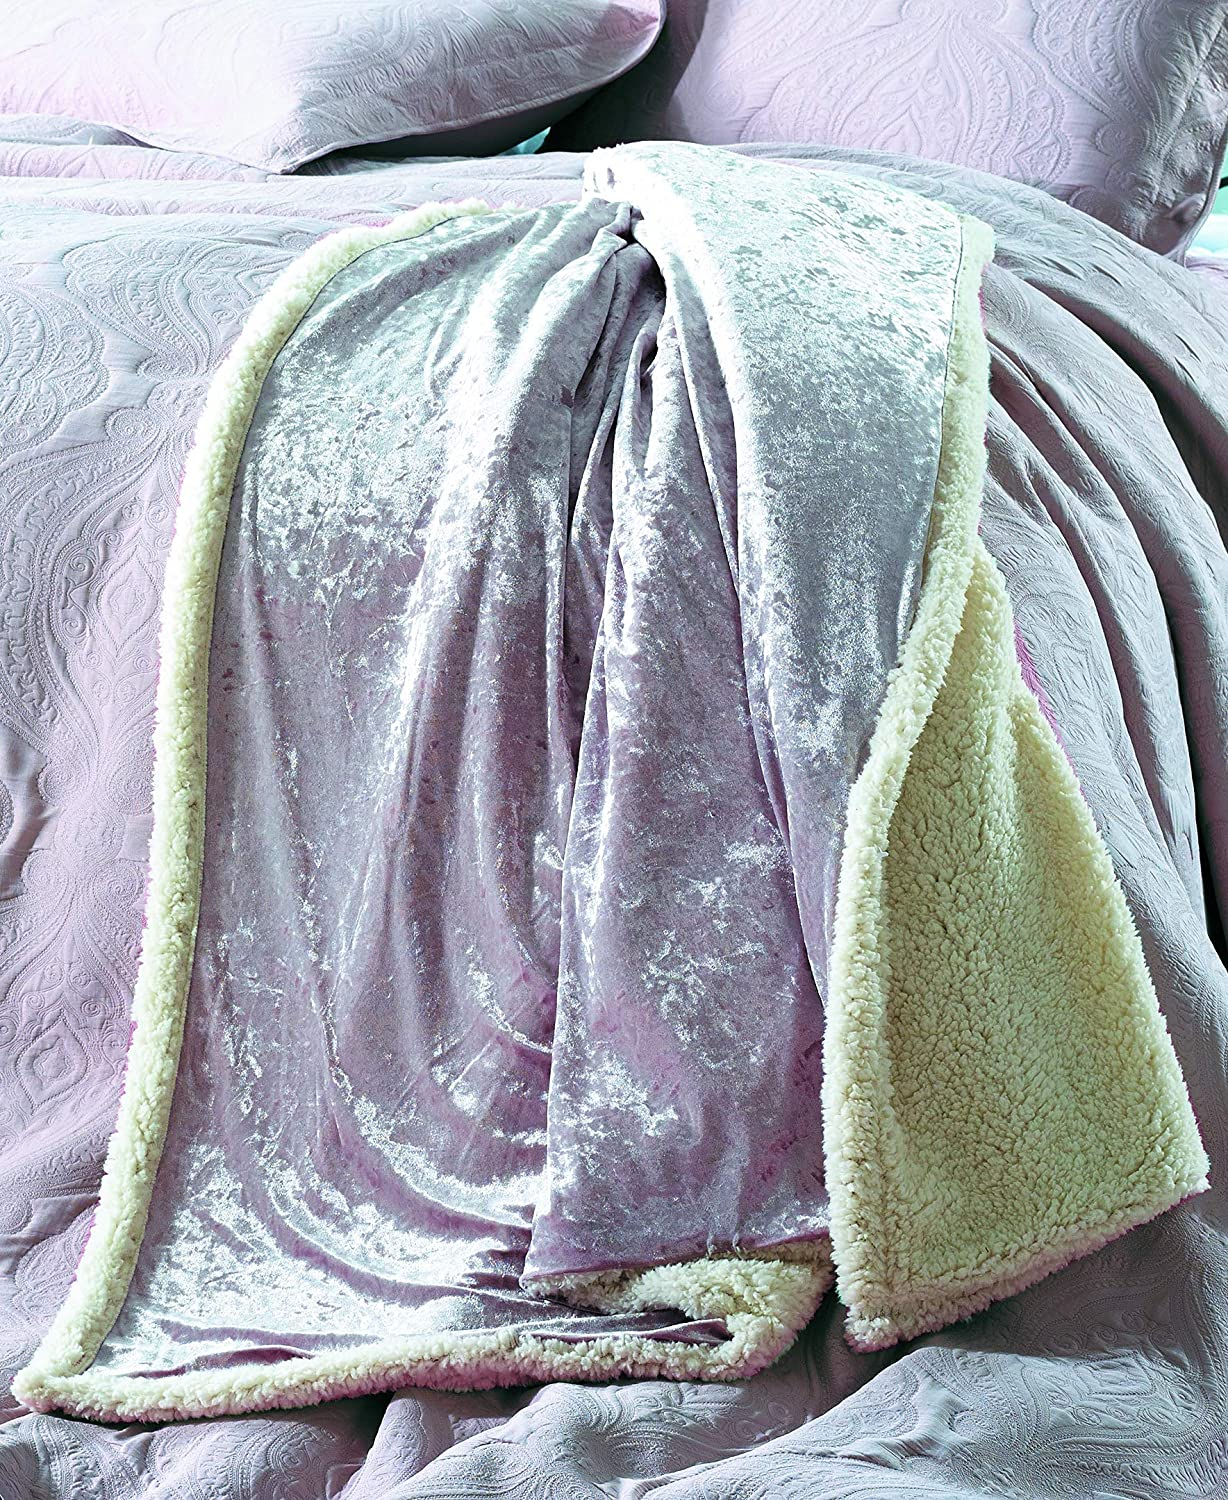 White DE MOOCCI Velvet Crush Sherpa Throw Blanket for Couch 50 x 60 Super Soft and Cozy with a hint of Sheen